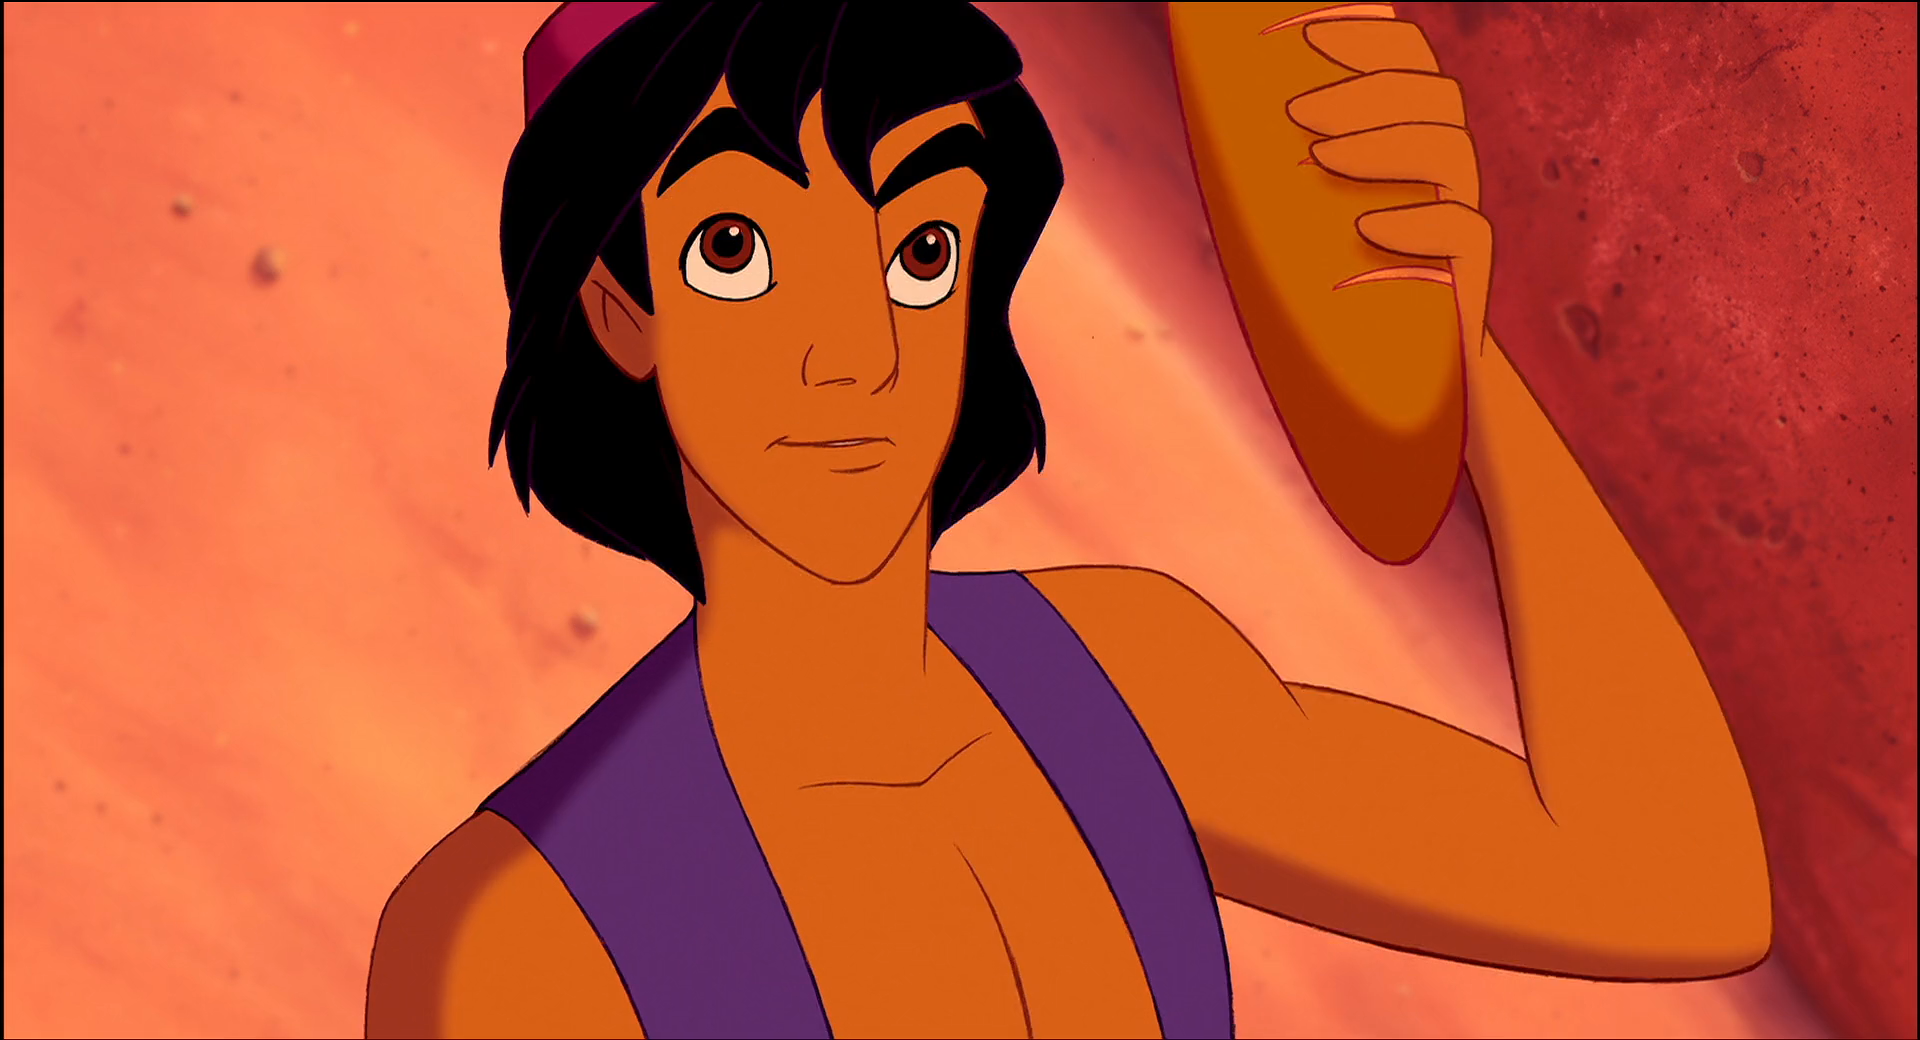 Aladdin disney heroes happens. Curiously